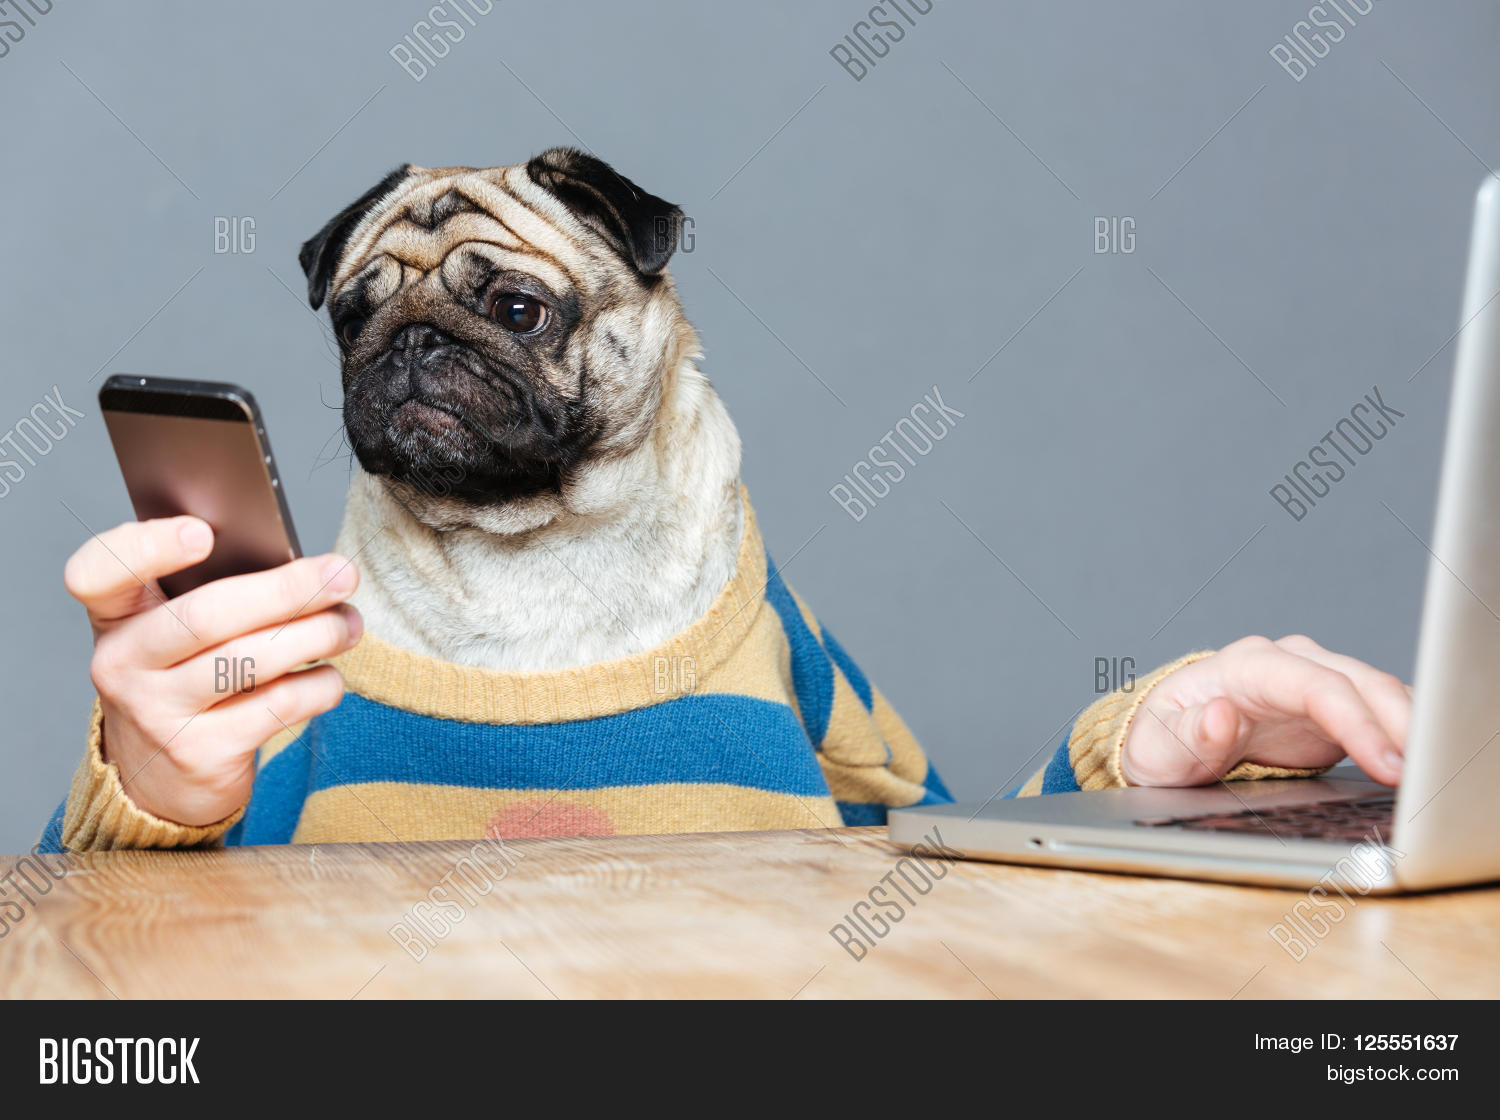 Funny man pug dog head image photo free trial bigstock funny man with pug dog head in striped pullover using laptop and smartphone over grey background voltagebd Choice Image